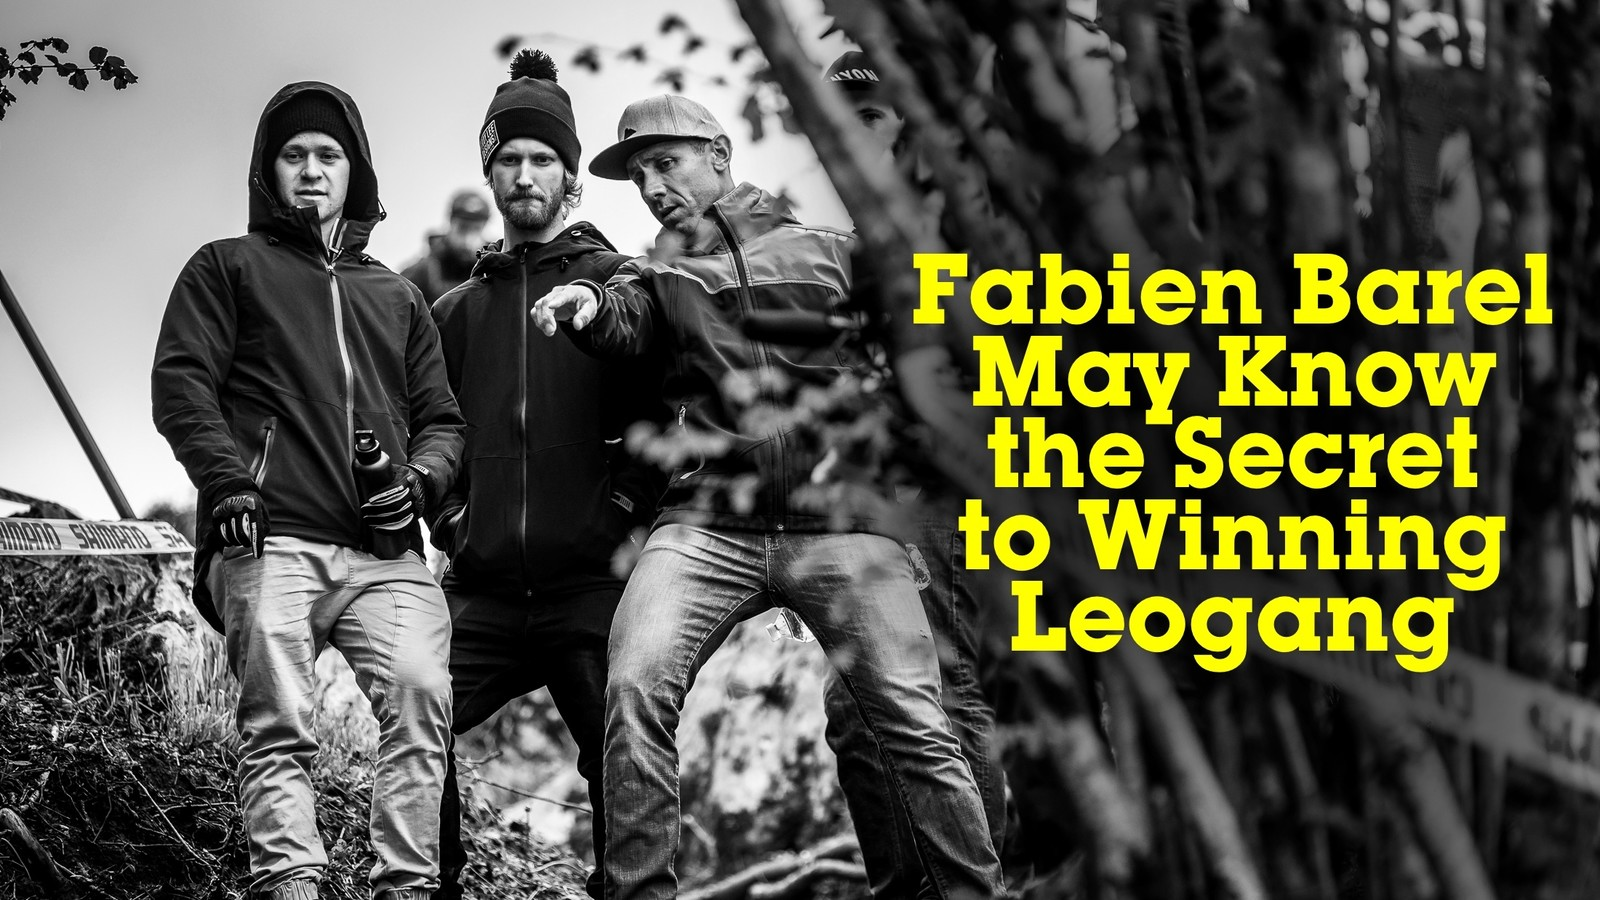 Fabien Barel May Know the Secret to Winning Leogang